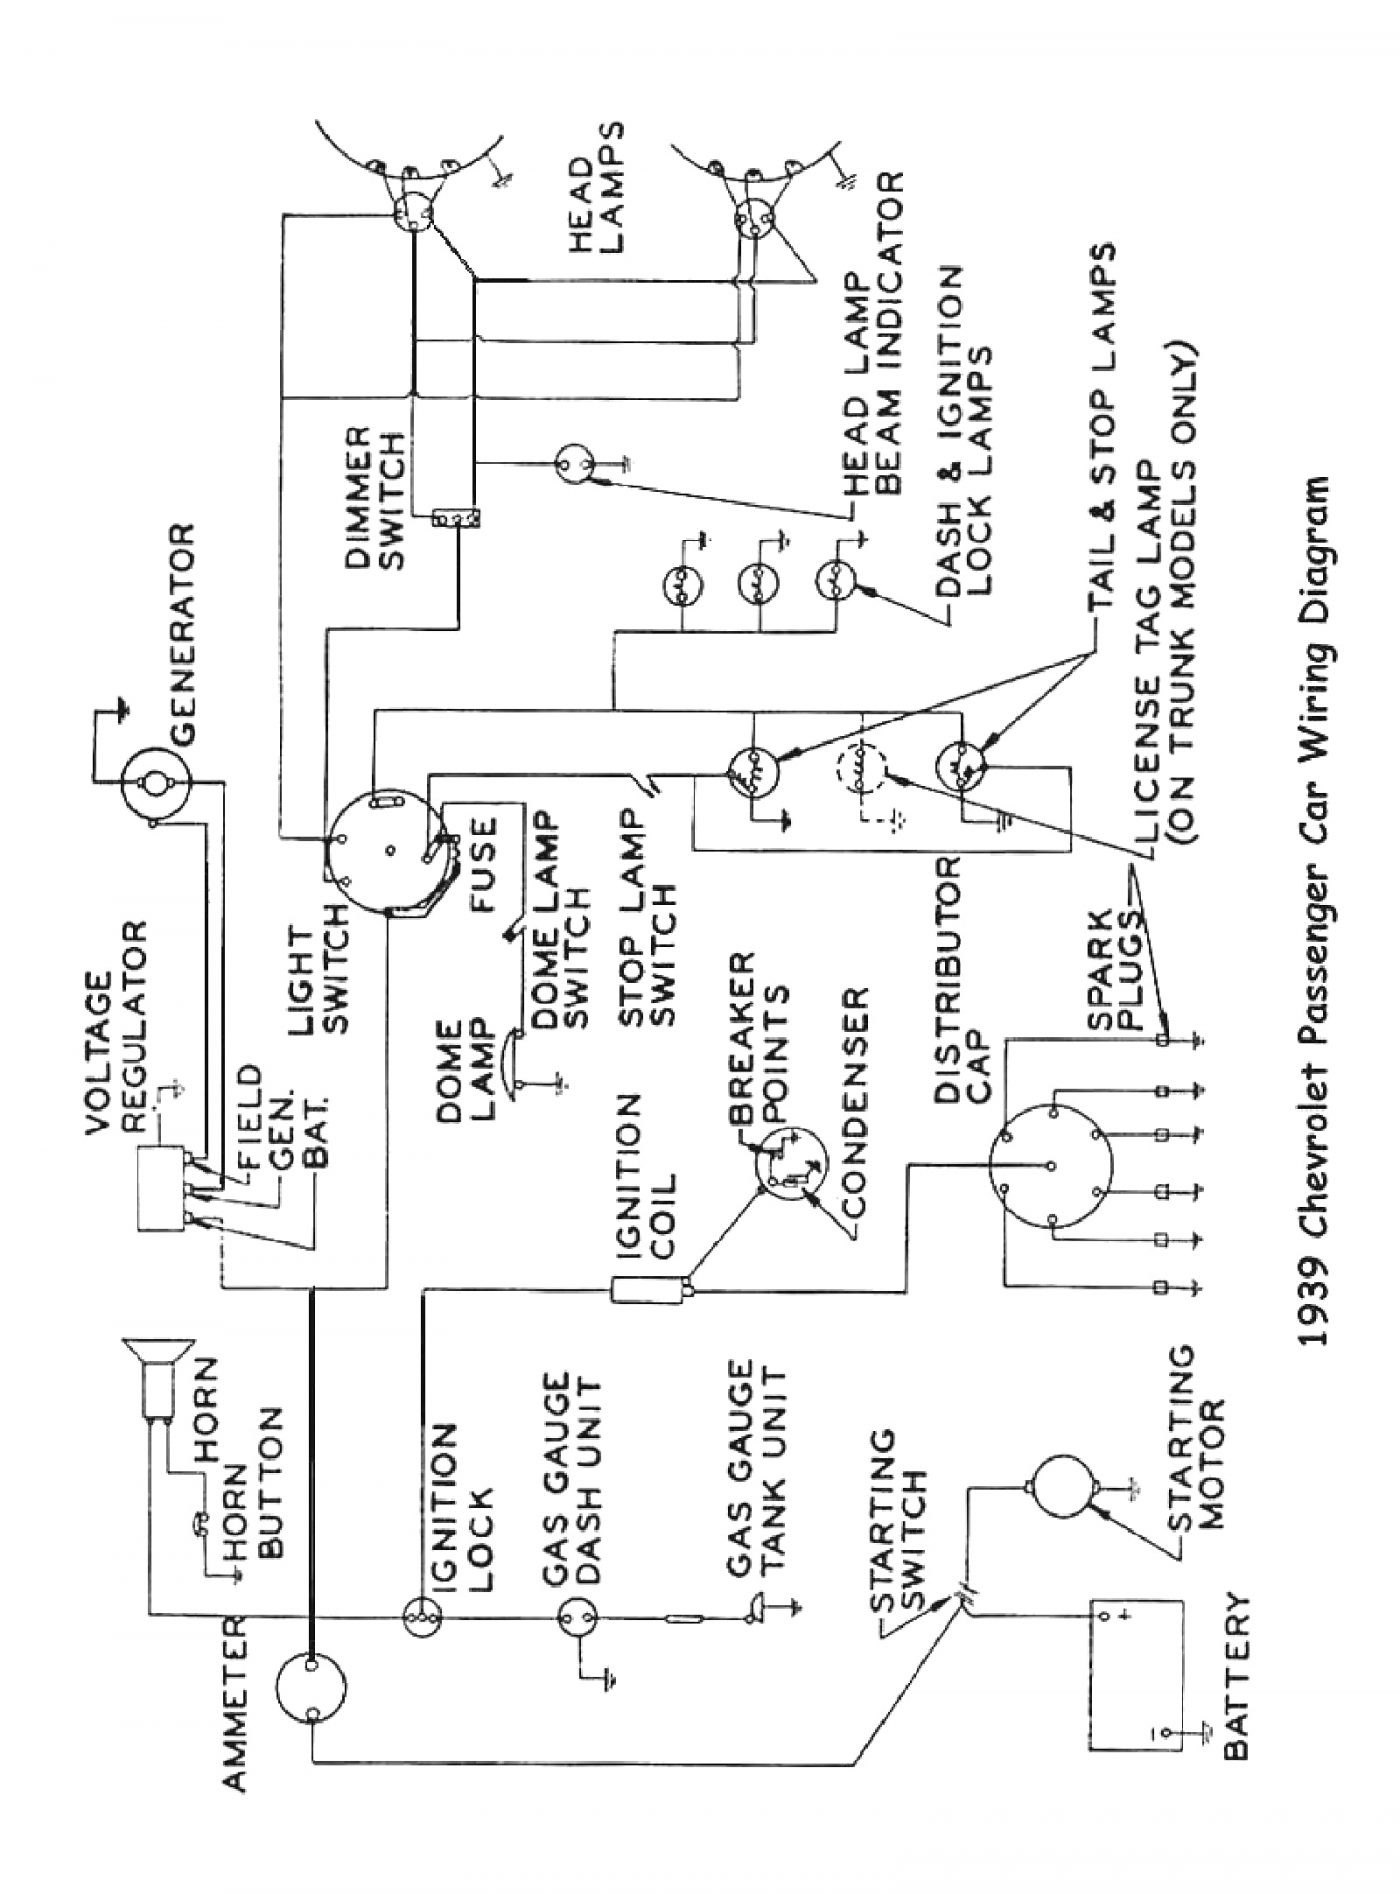 Western Fisher Plow Wiring Diagram